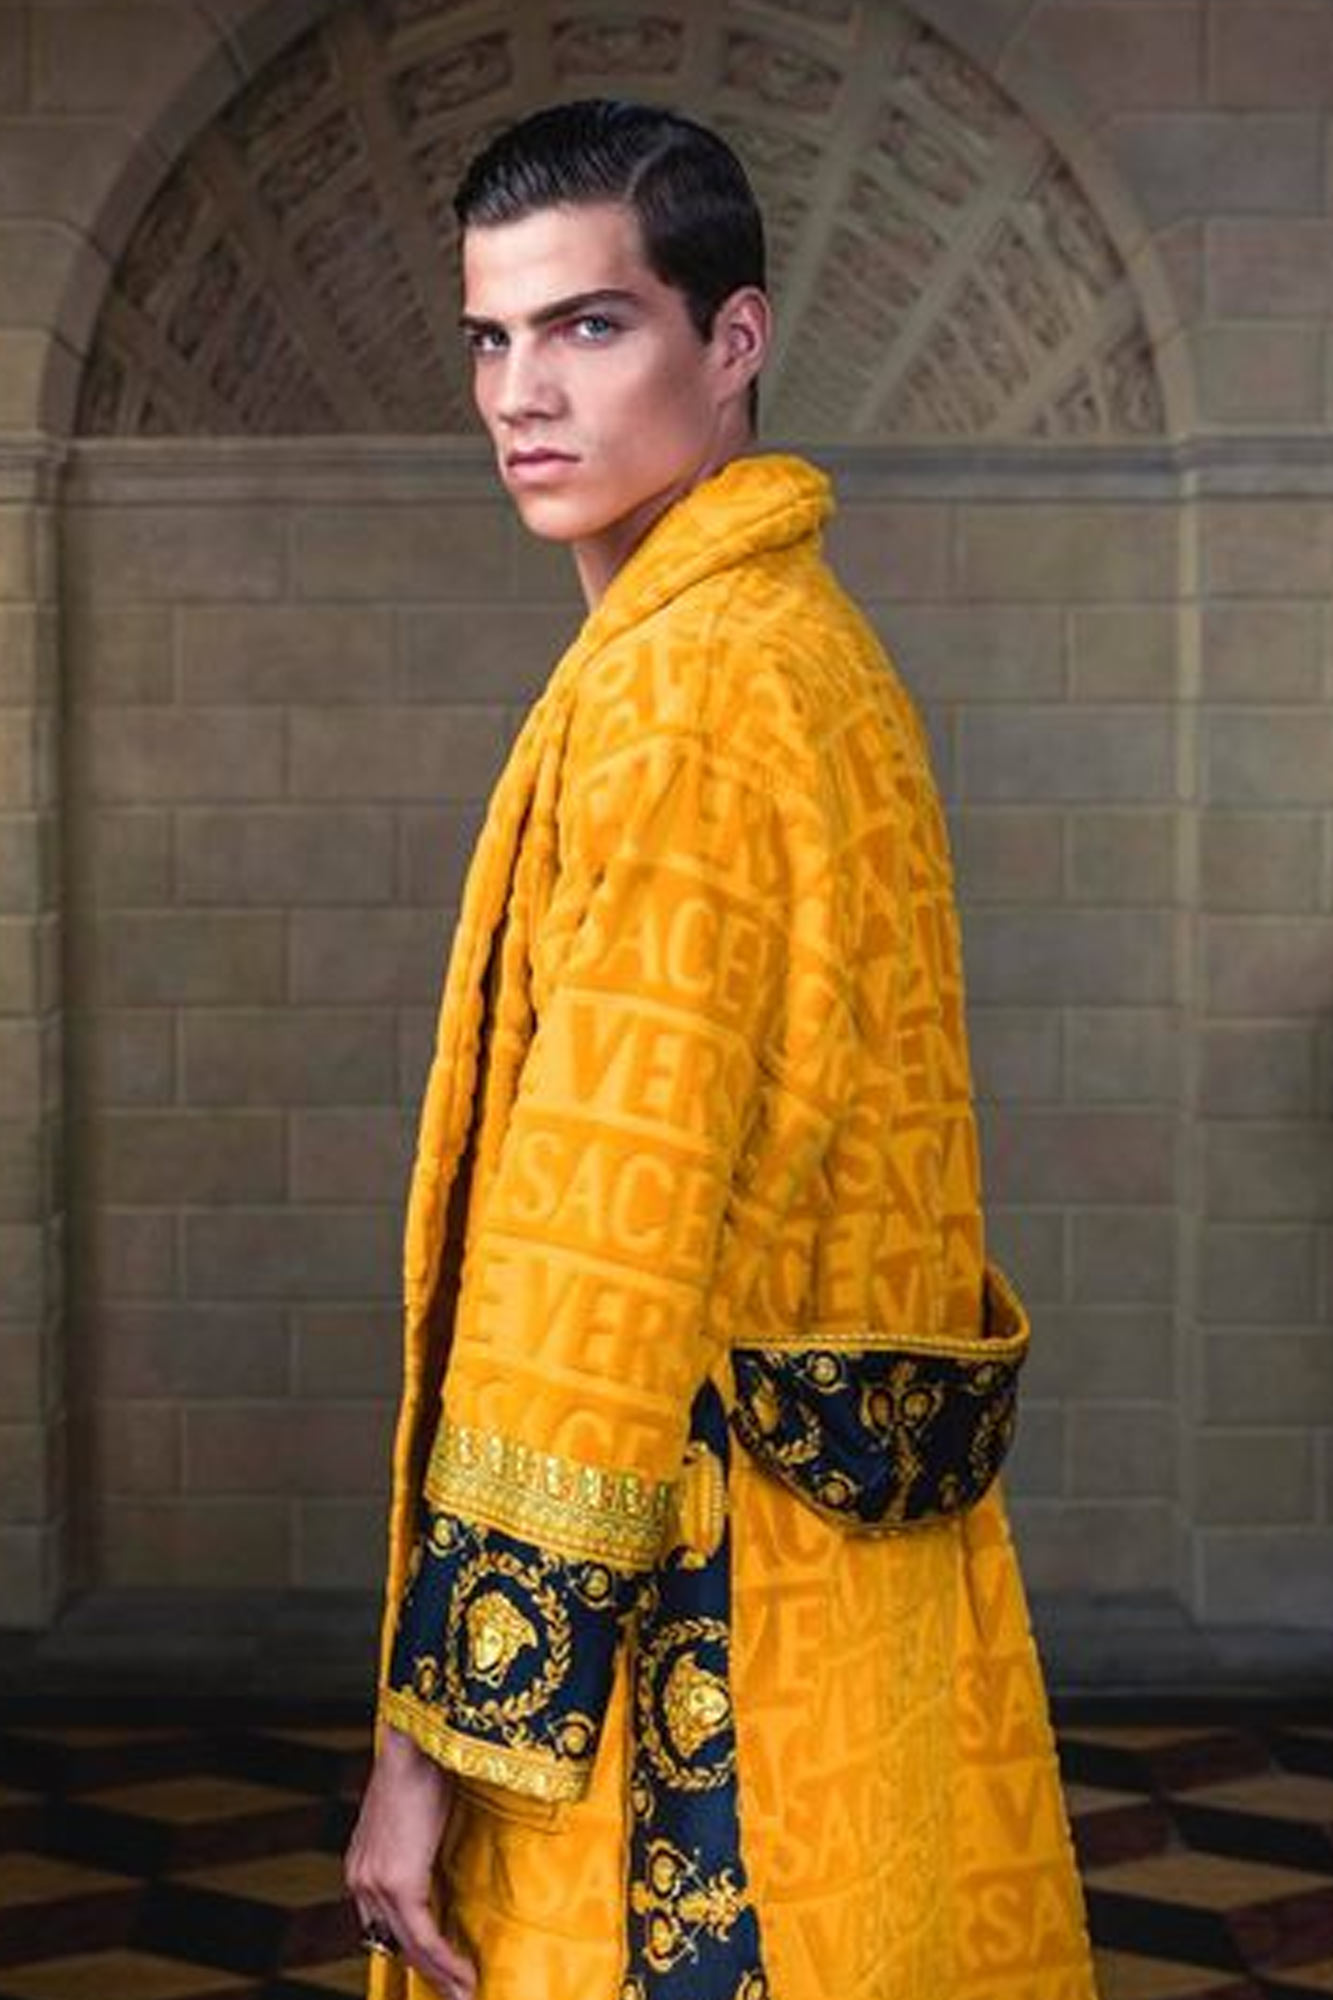 Versace I ♡ Baroque Bathrobe Oro Jaguar Mode